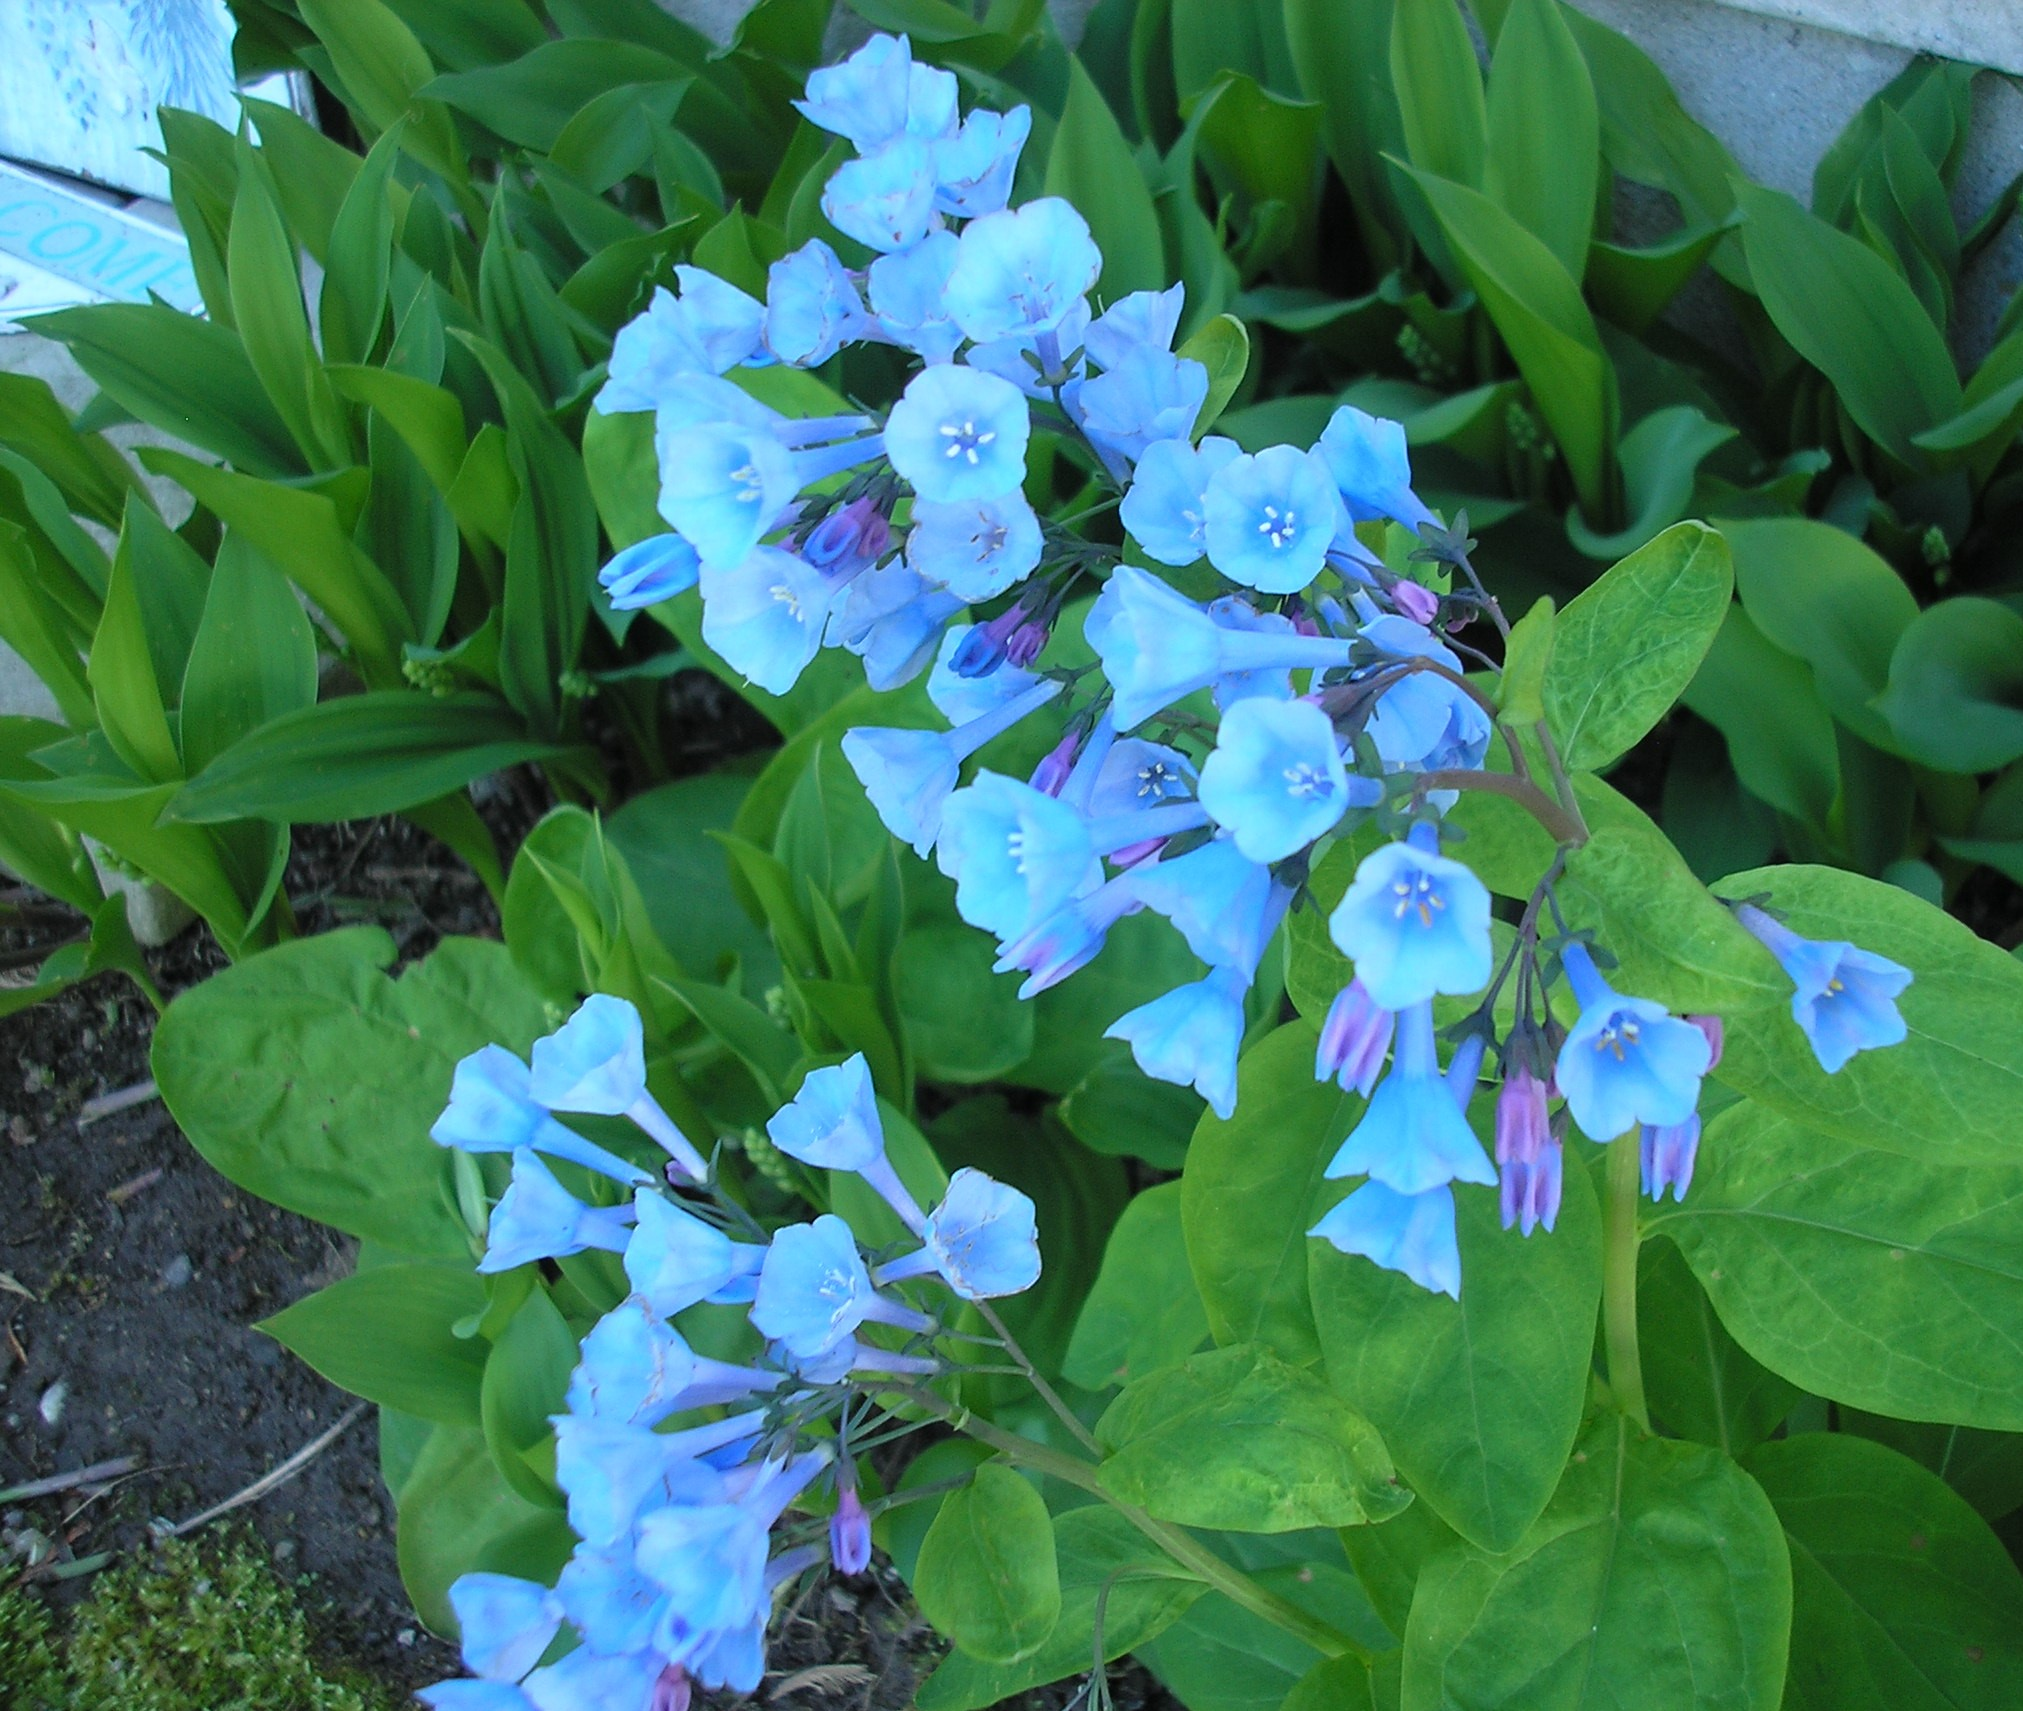 Blue flower near Lily of the Valley